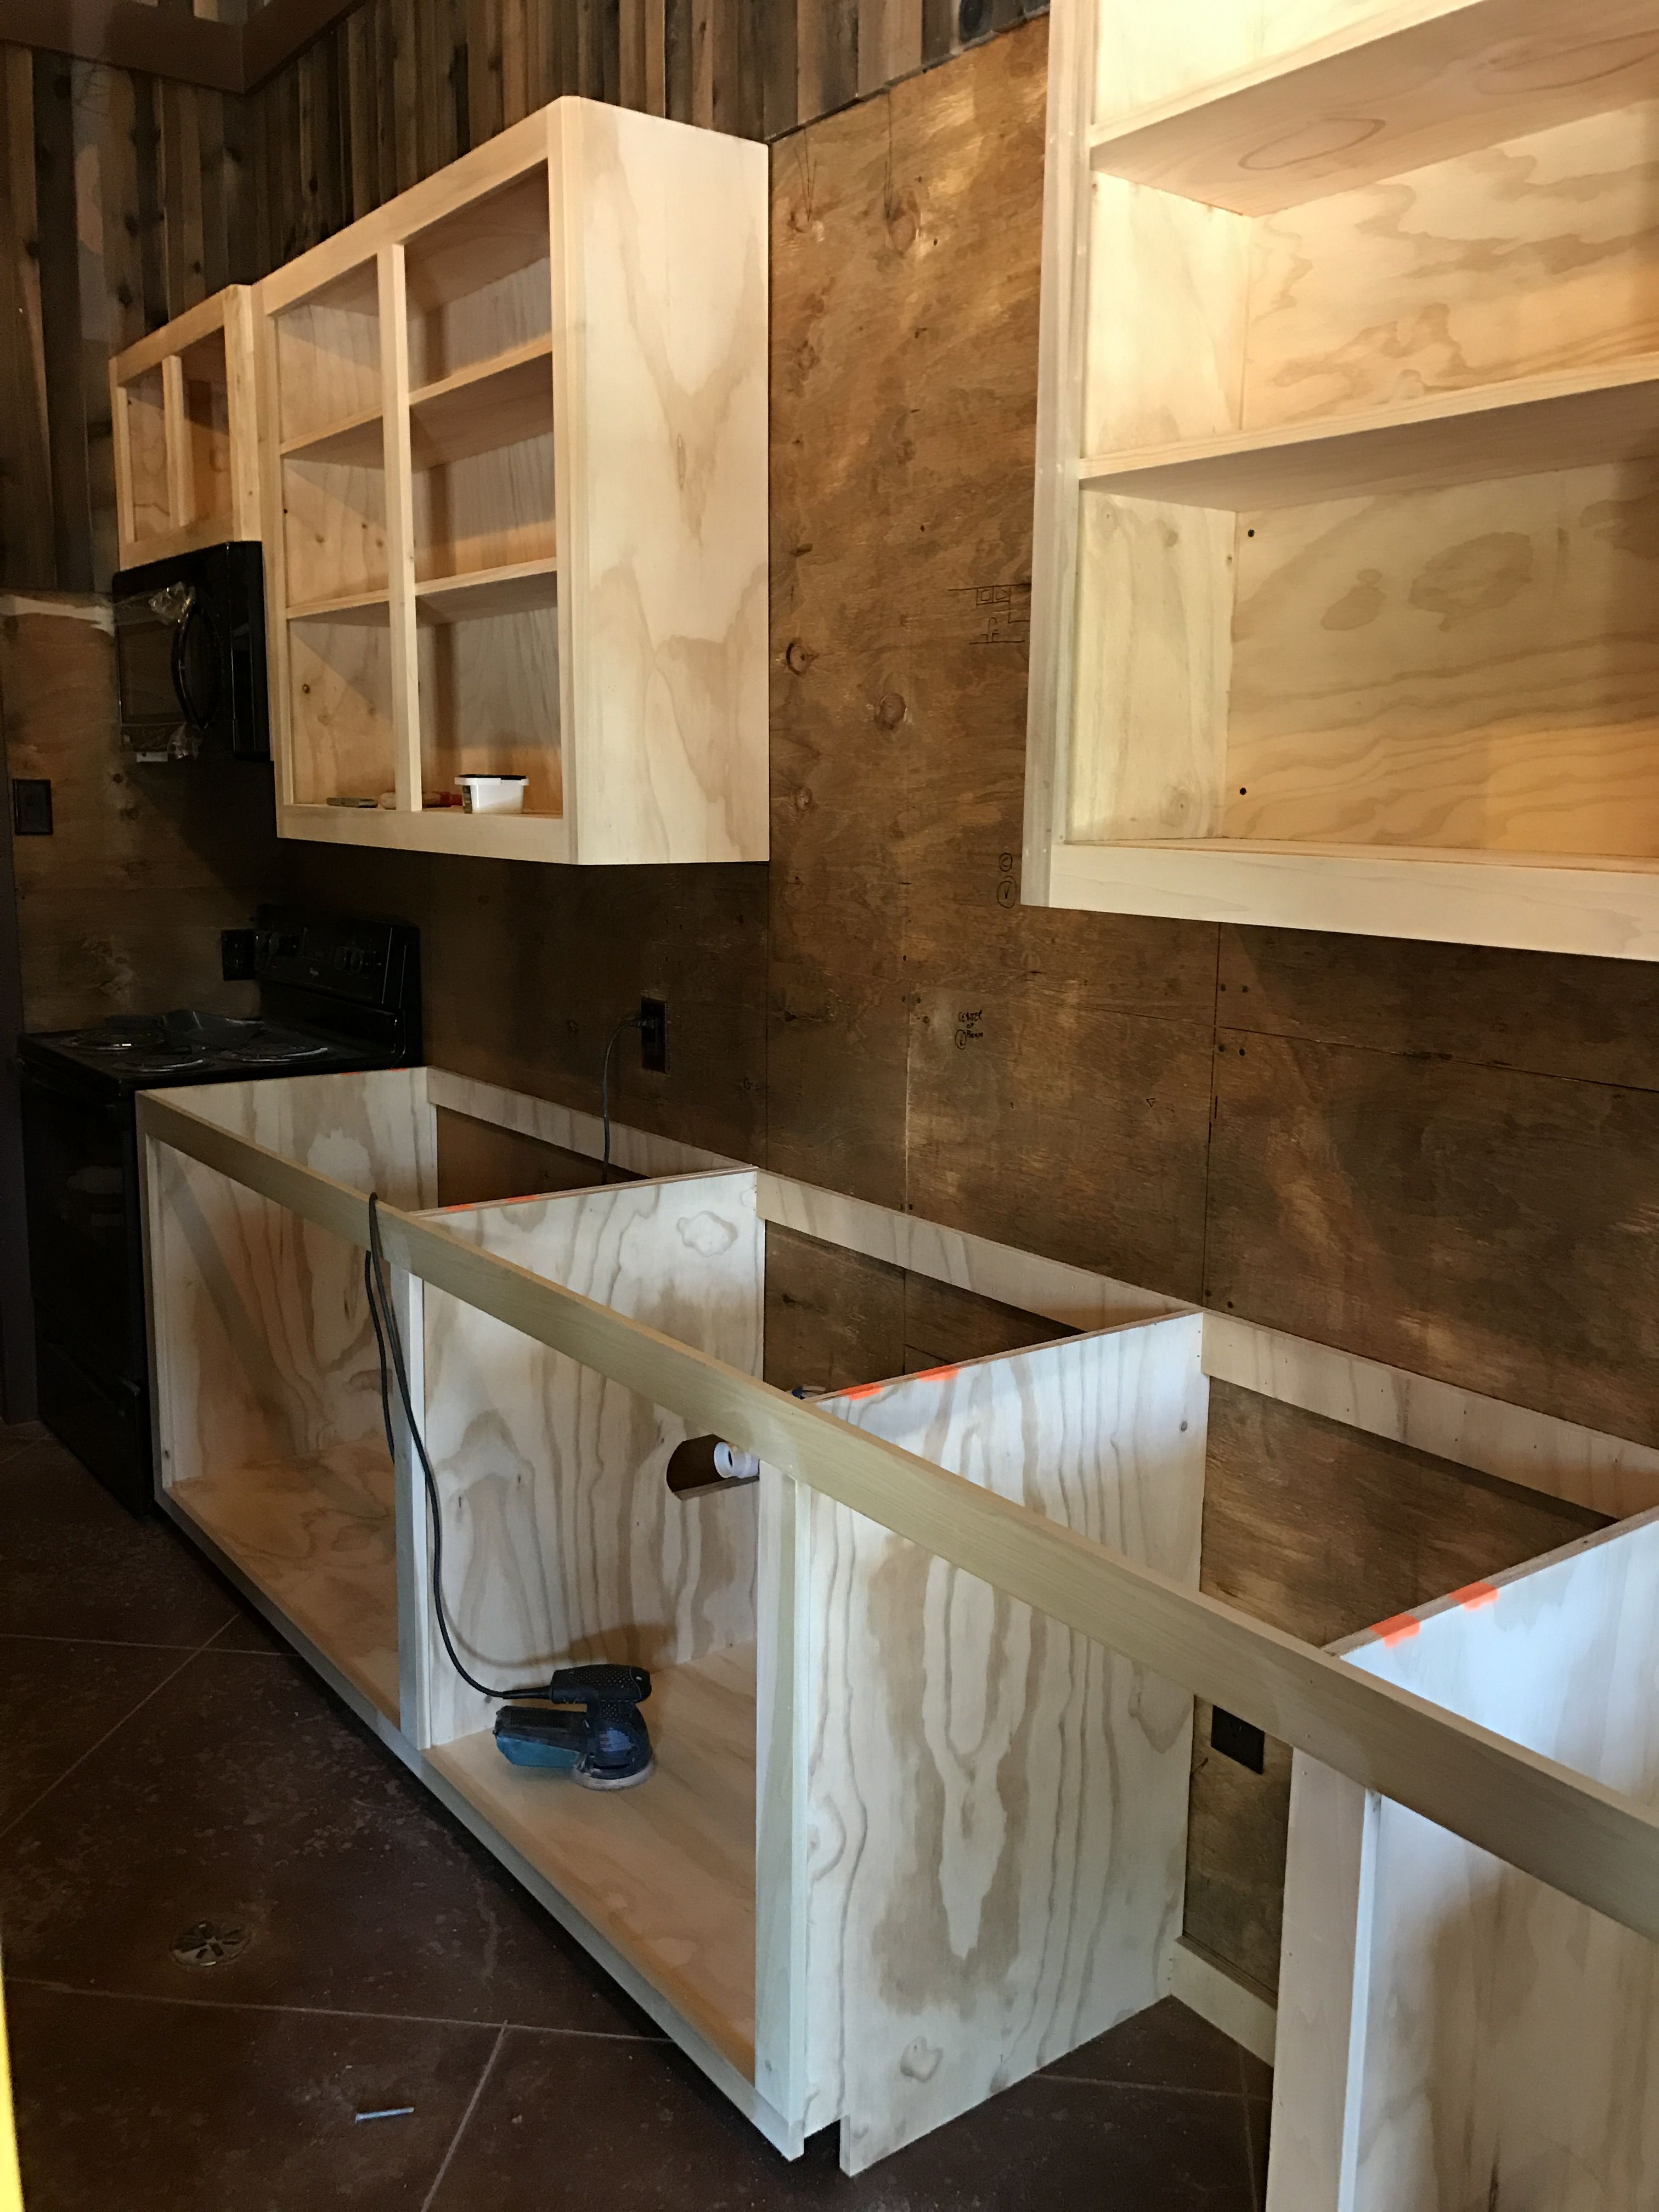 plywood cabinets  Garage in 2019  Building kitchen